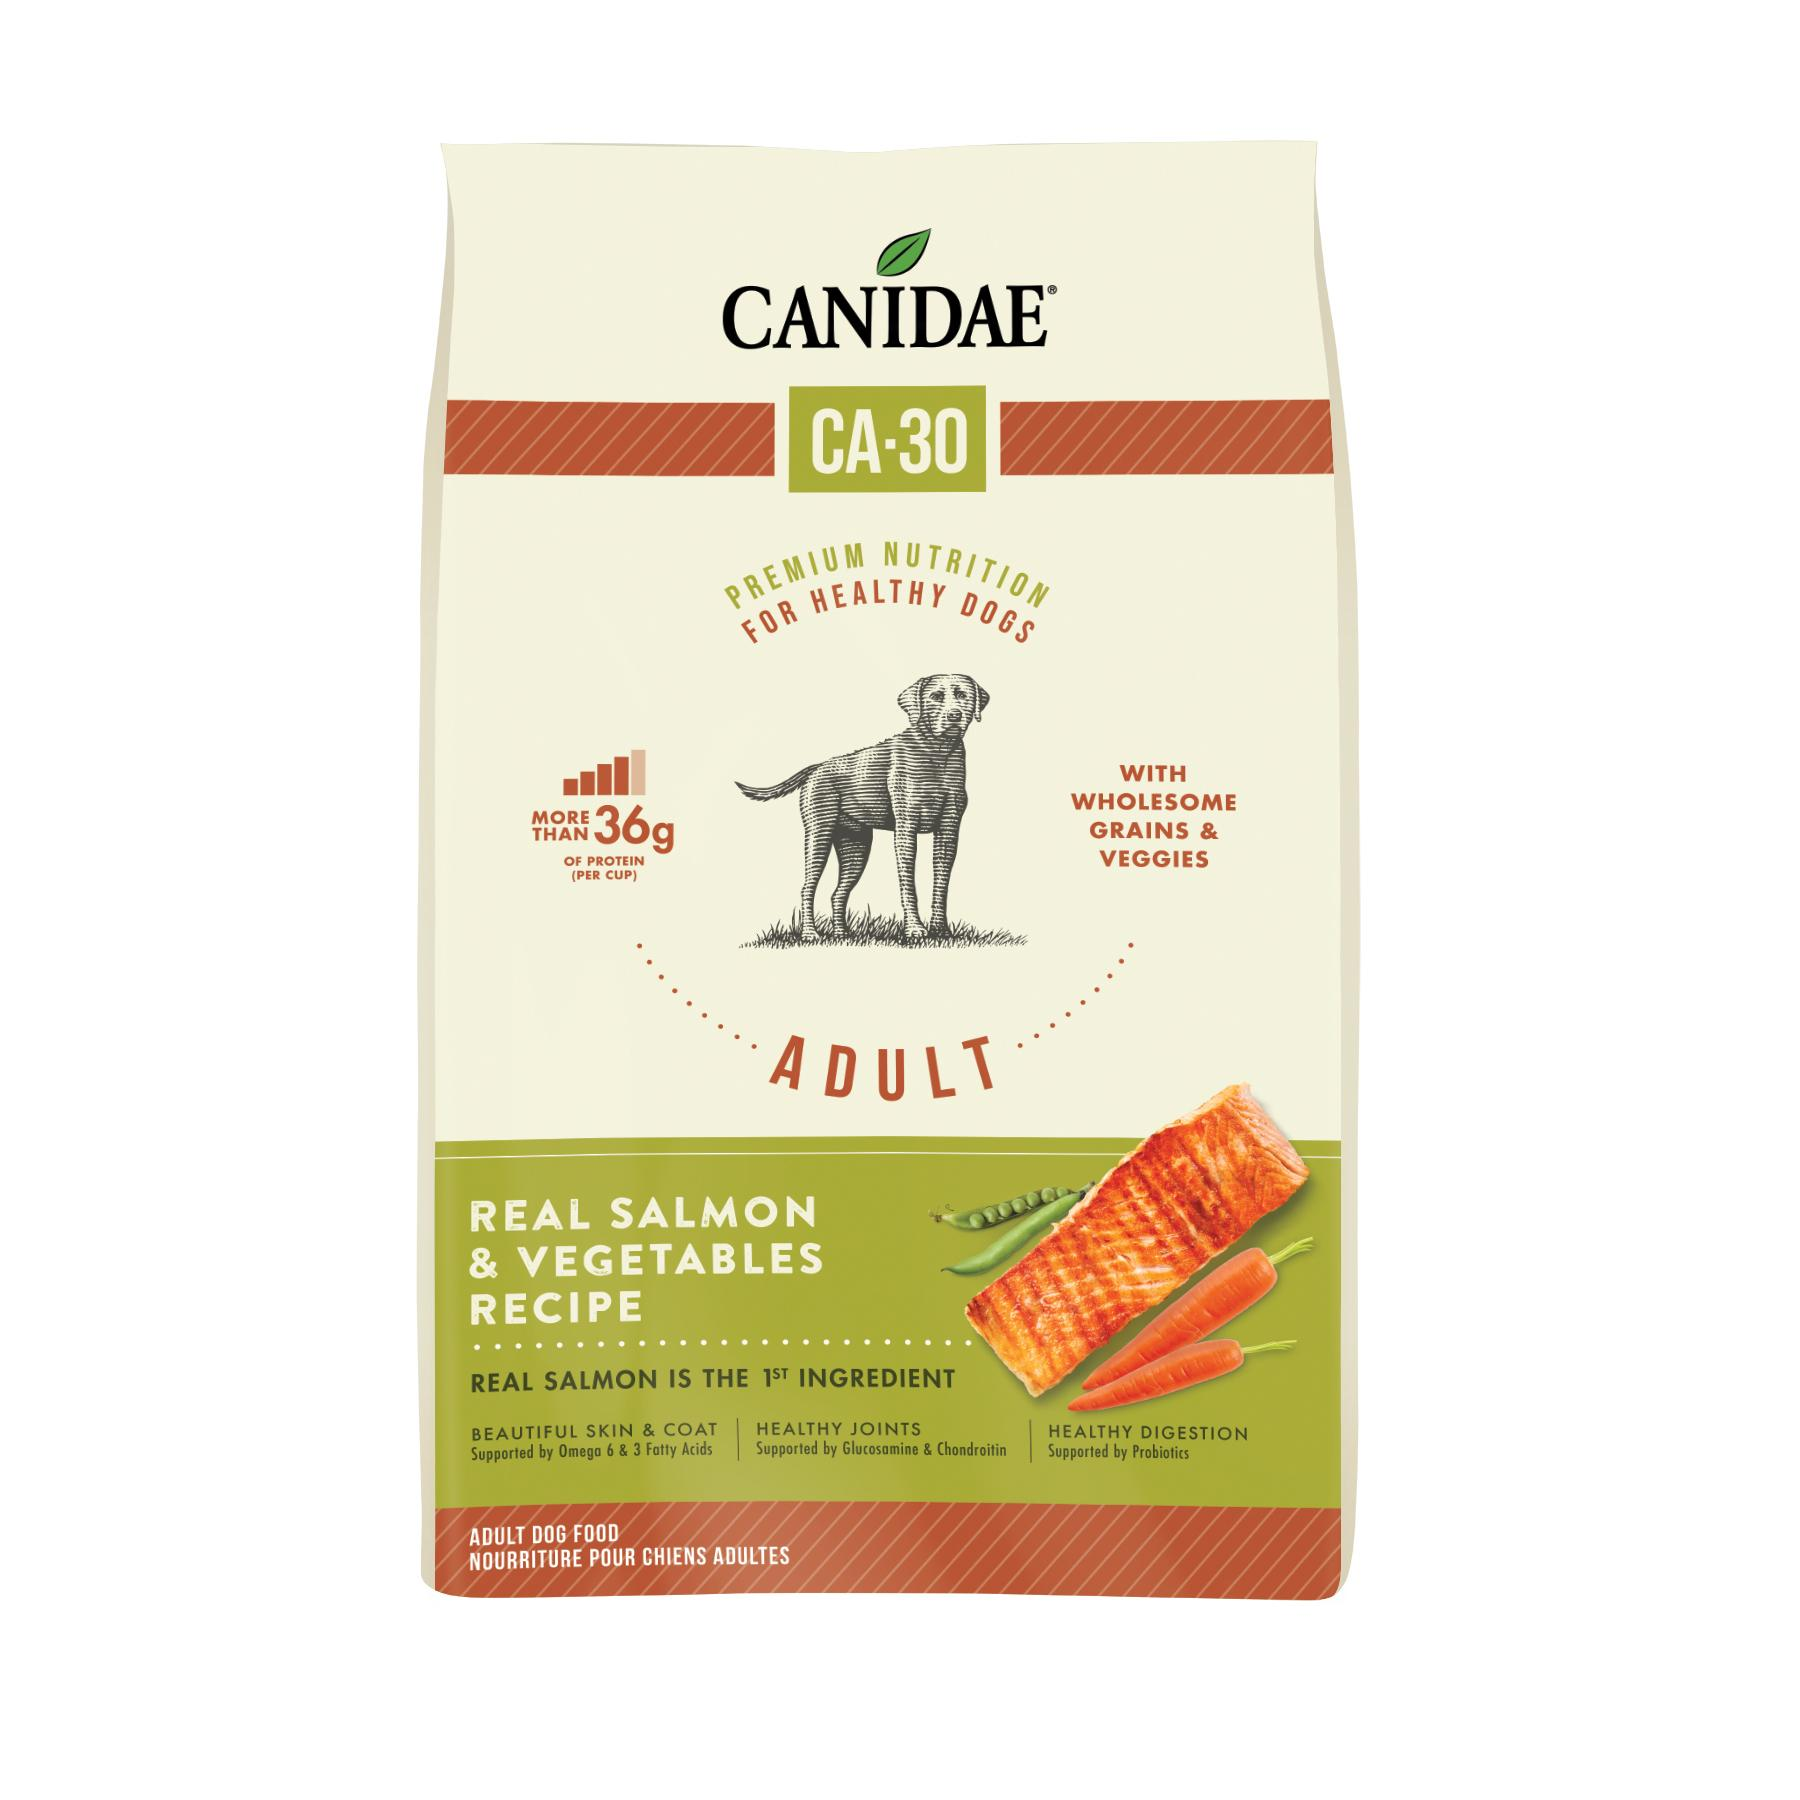 Canidae CA-30 Real Salmon & Vegetables Recipe Dry Dog Food, 25-lb